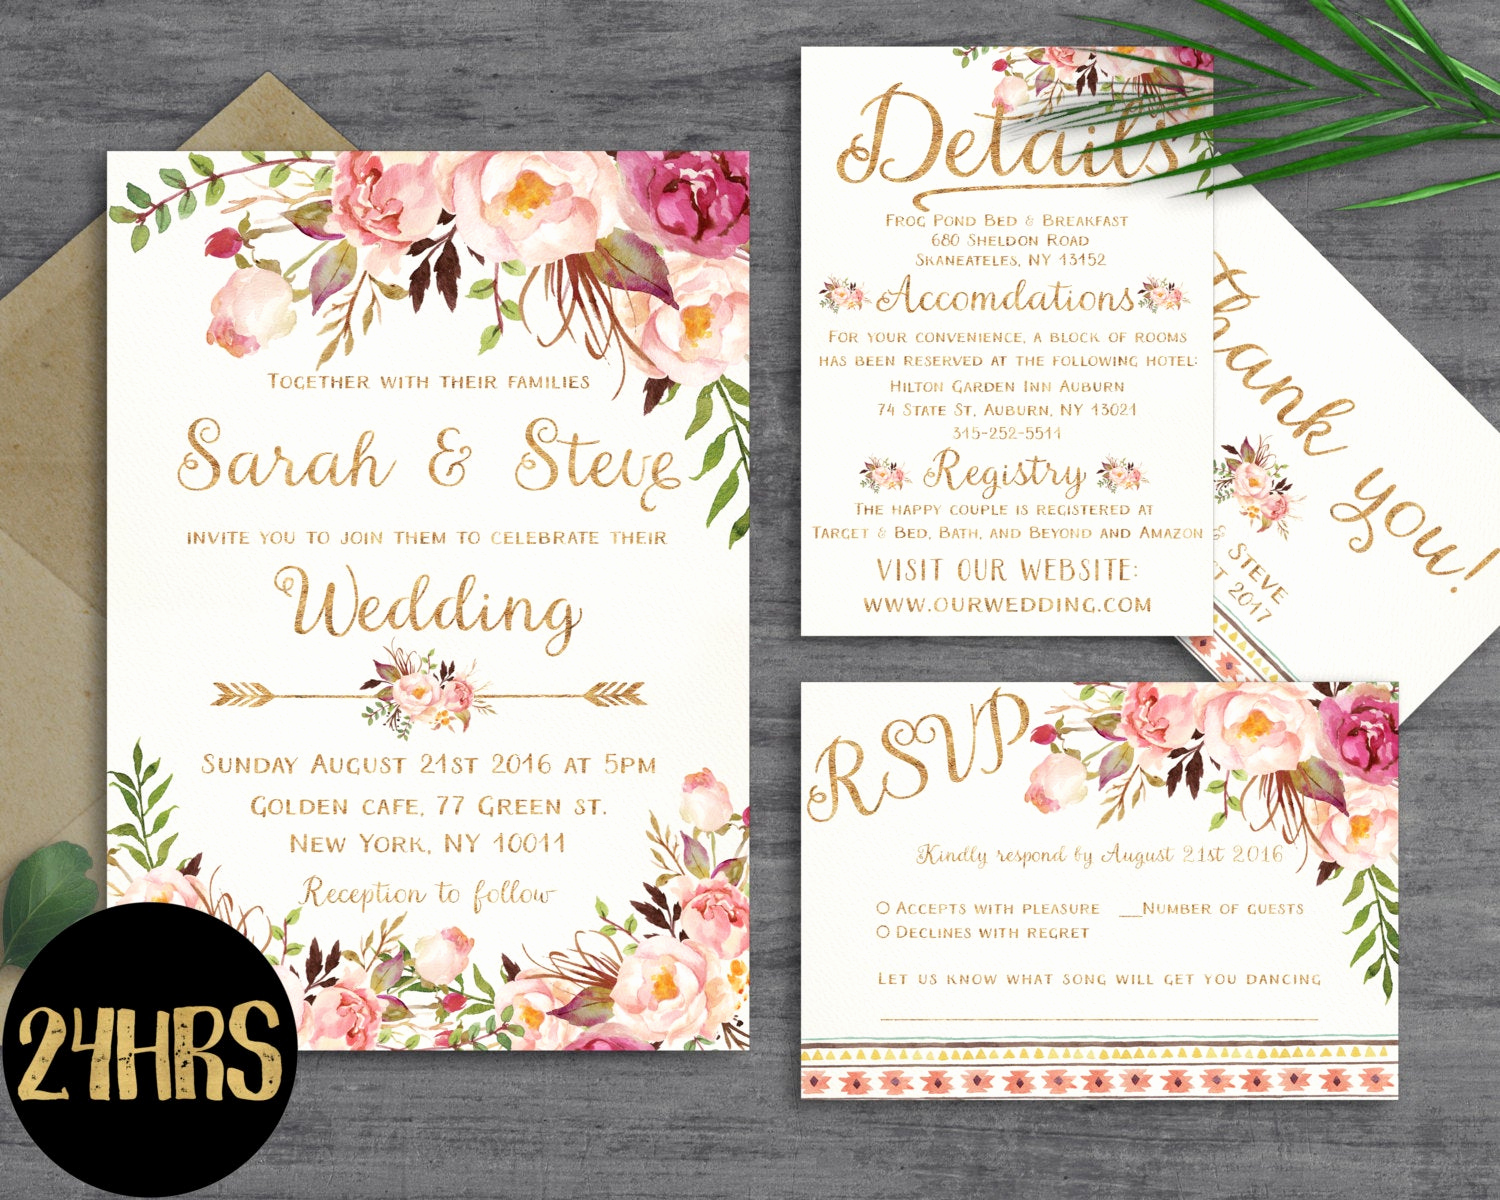 Wedding Invitation Template Download Beautiful Floral Wedding Invitation Template Wedding Invitation